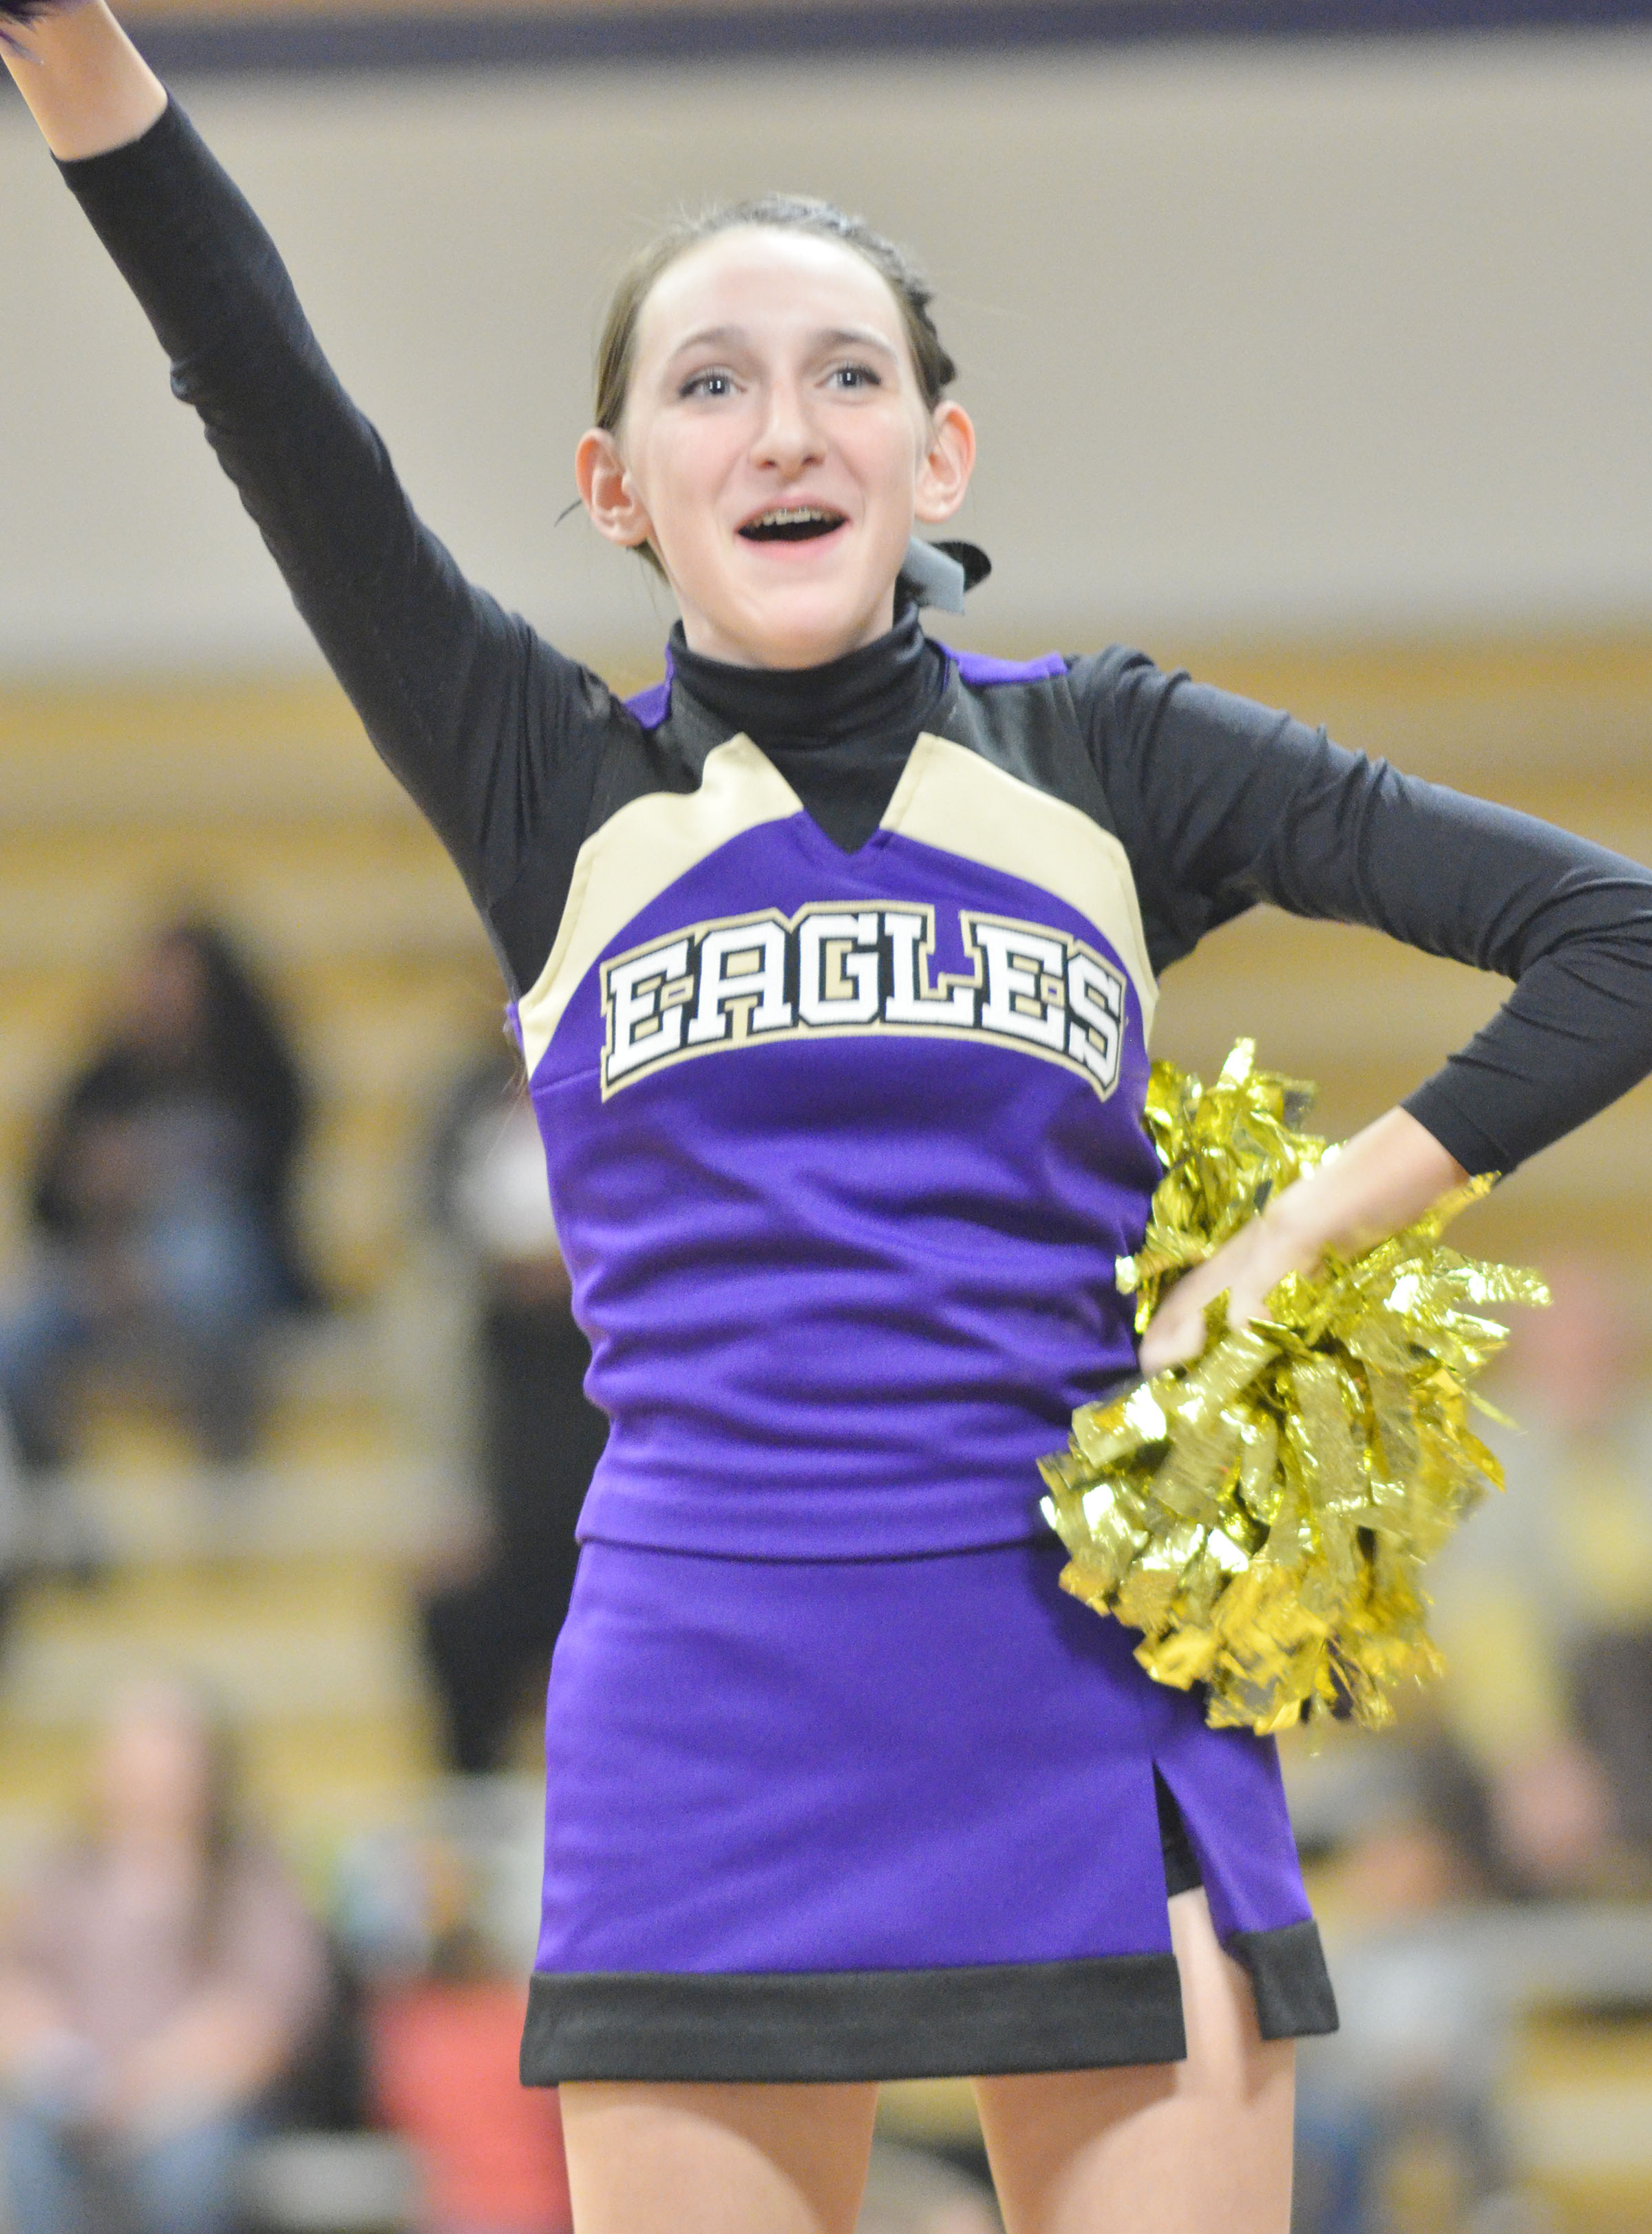 CHS freshman Zoe McAninch cheers for the Eagles.